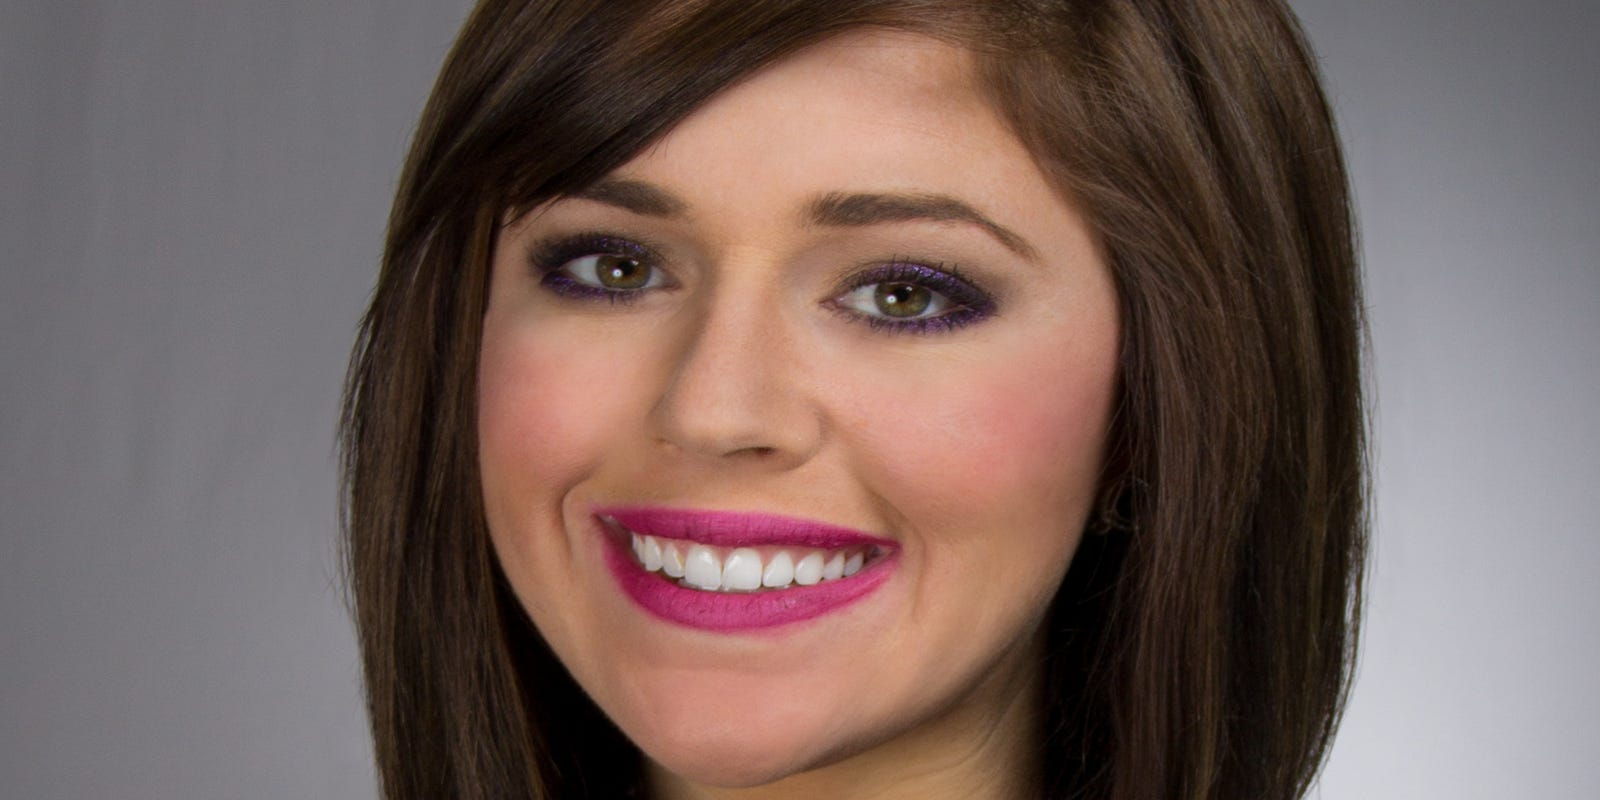 Whitney Martin, morning co-anchor at Milwaukee's WDJT, heads